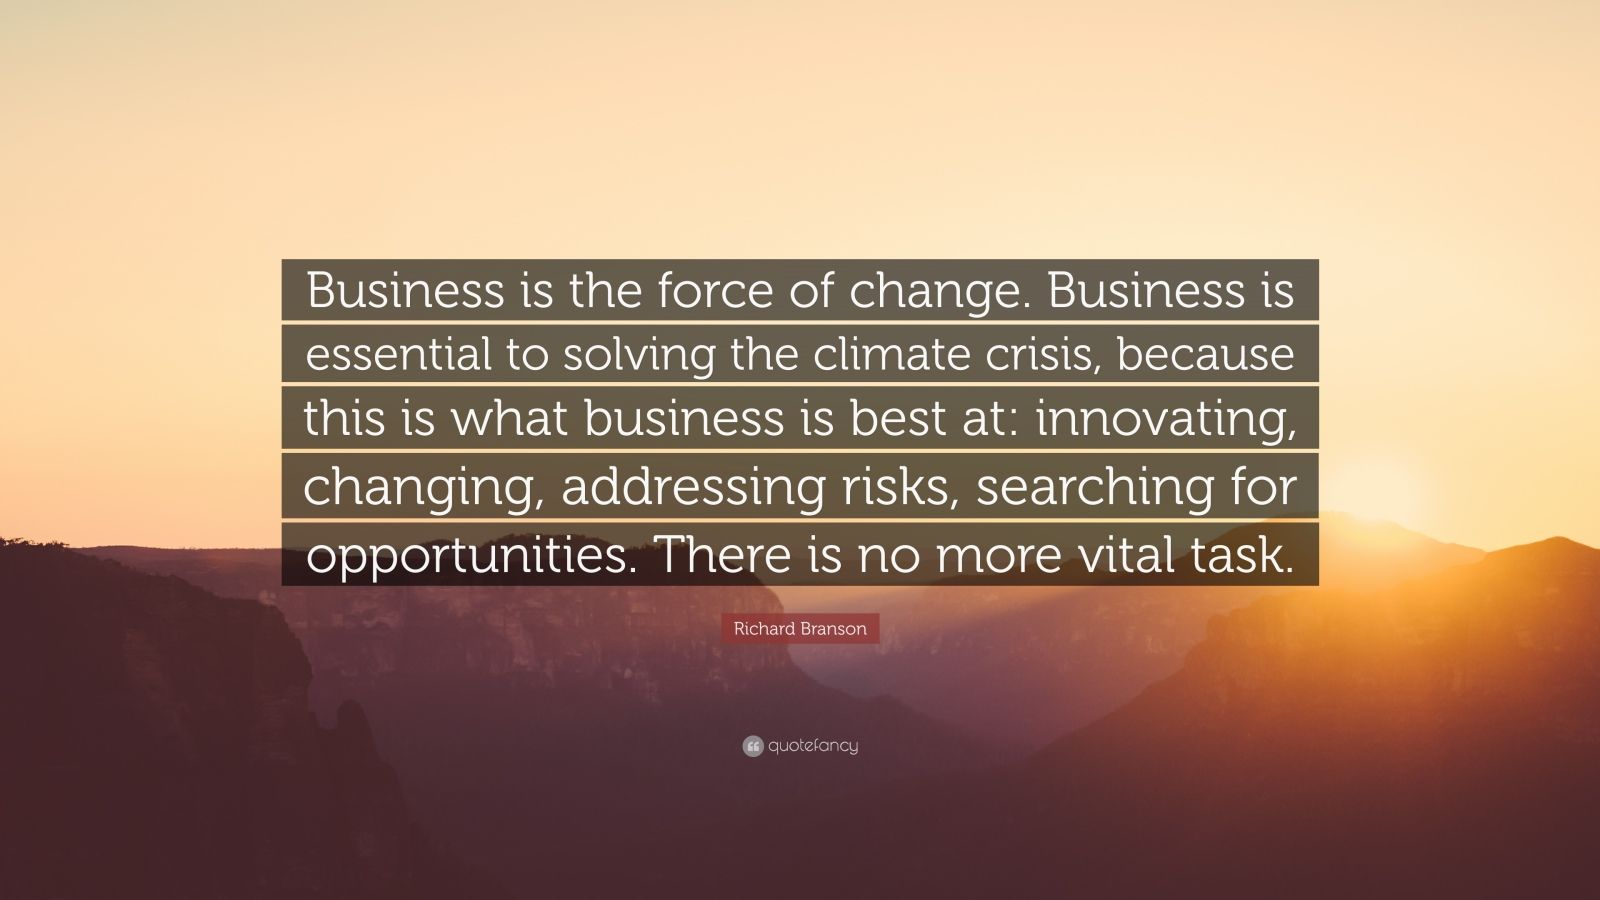 """Richard Branson Quote: """"Business is the force of change. Business is essential to solving the climate crisis, because this is what business is best at: innovating, changing, addressing risks, searching for opportunities. There is no more vital task."""""""